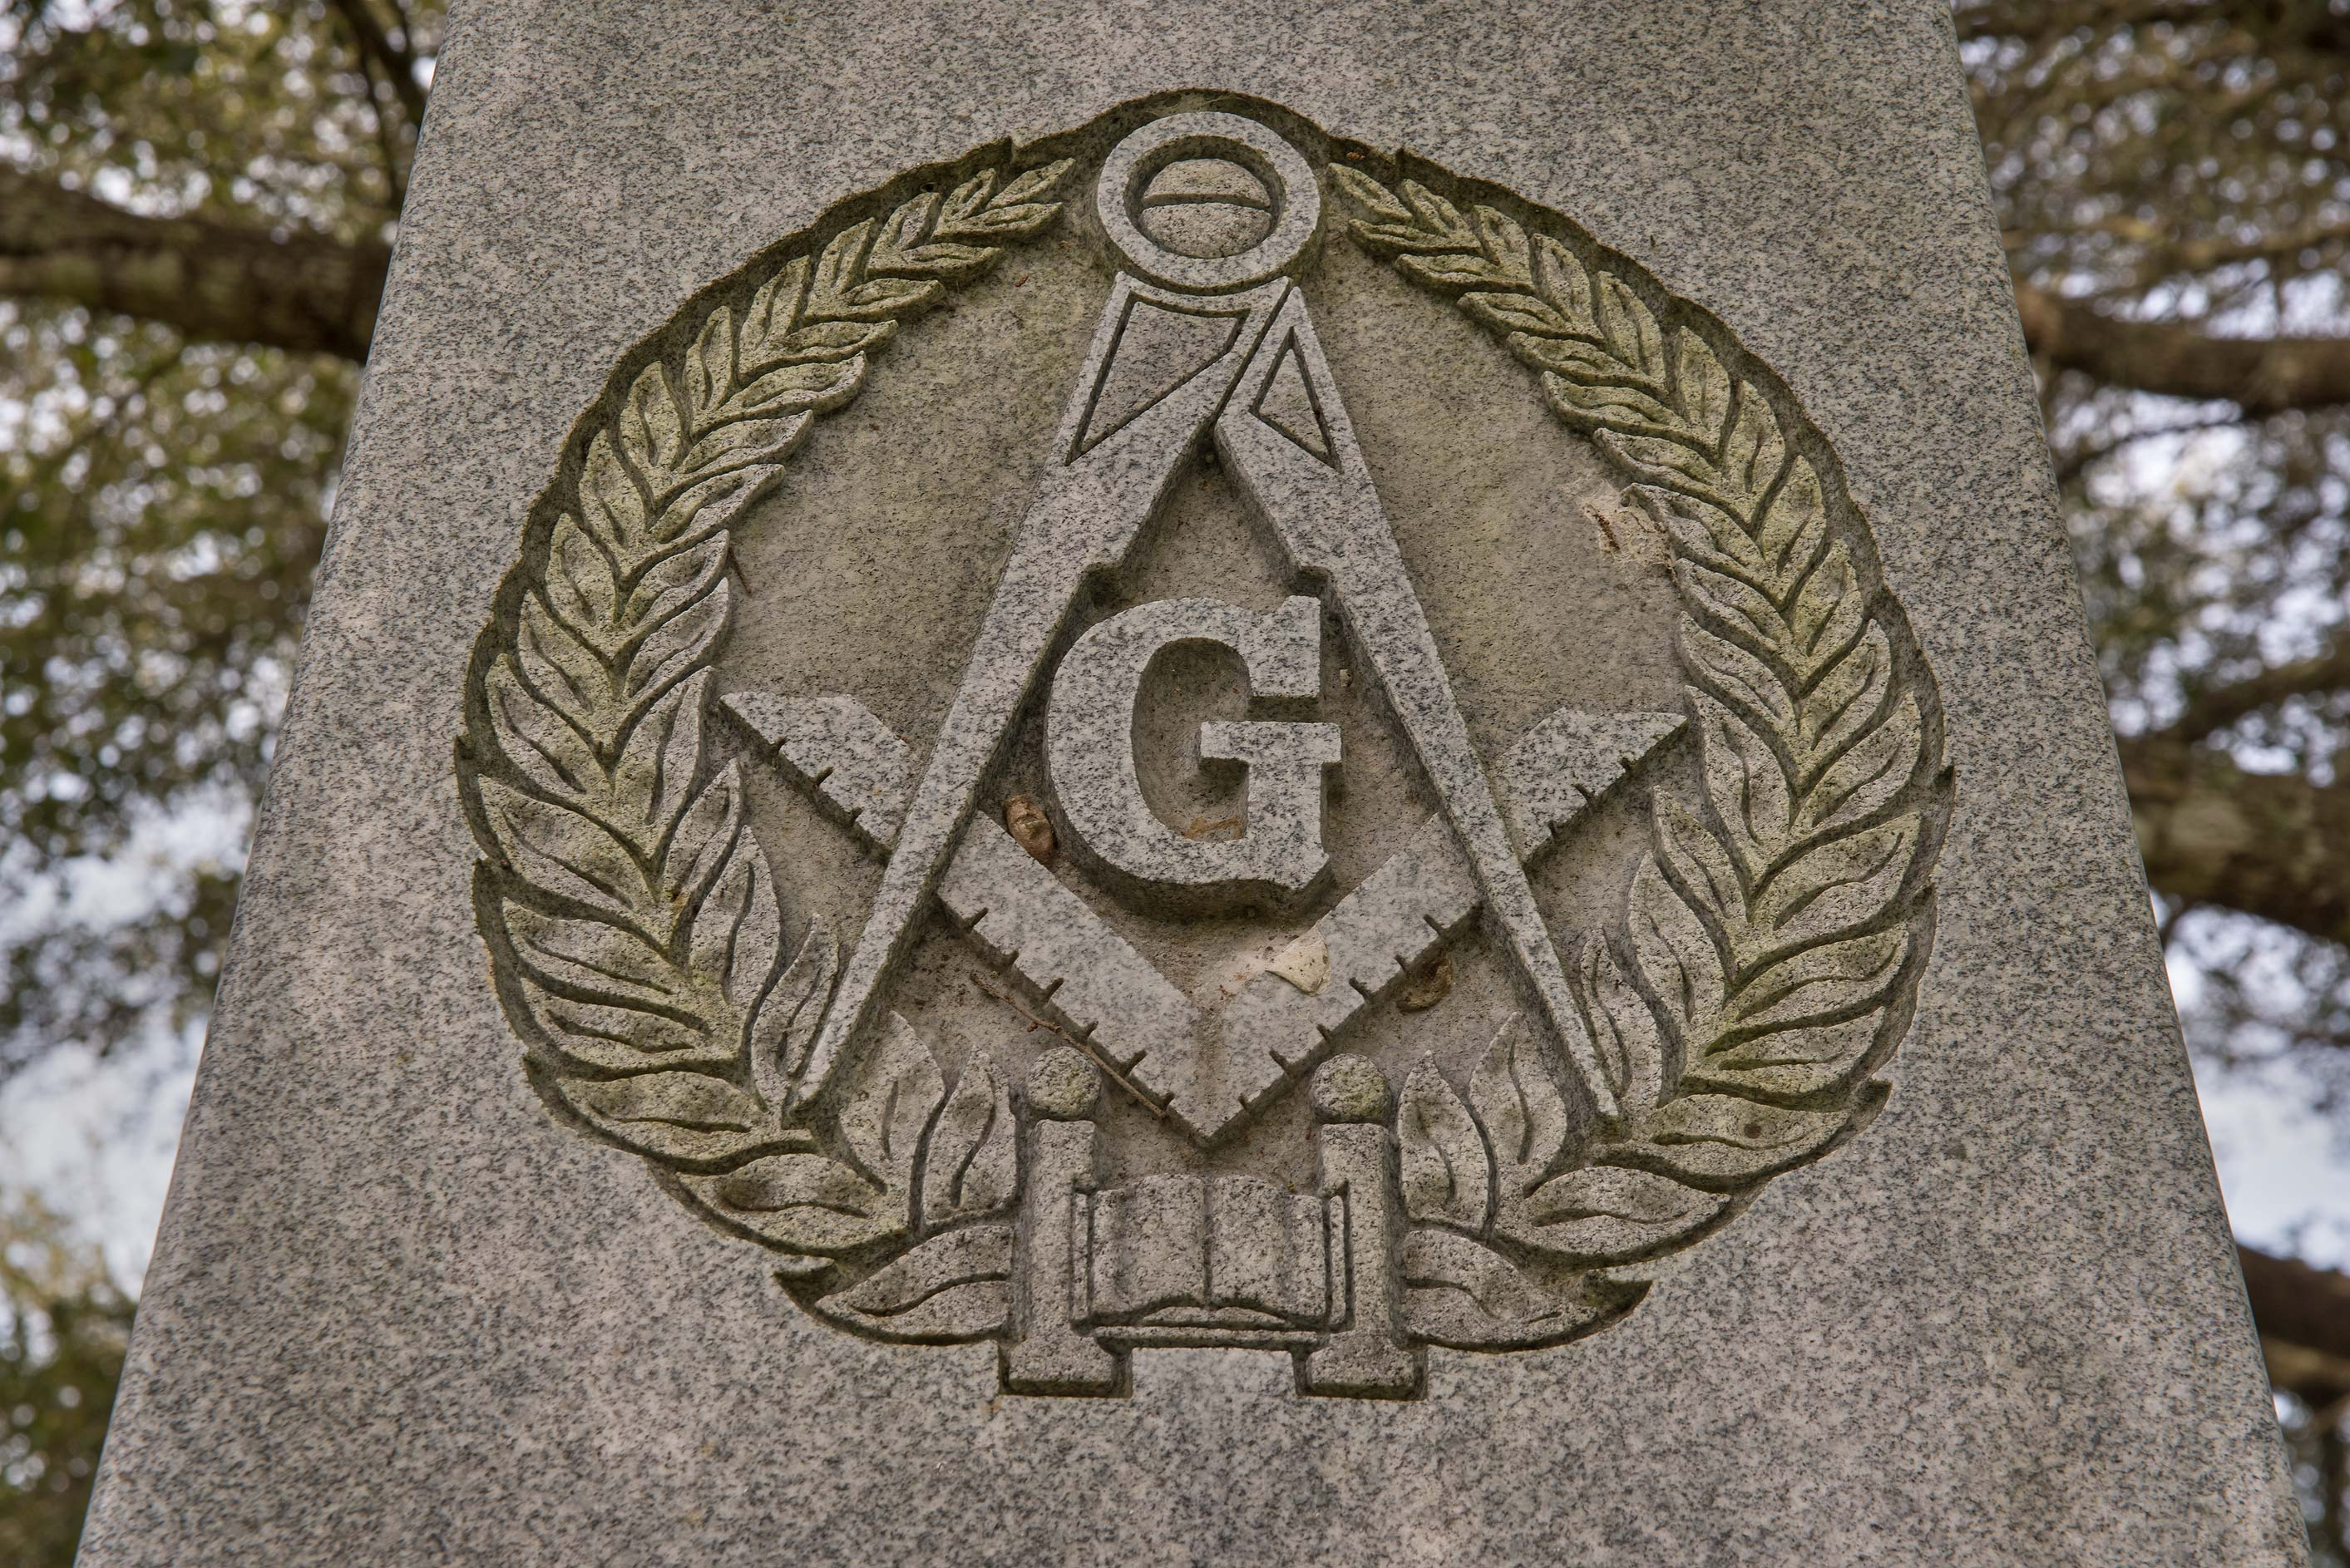 Detail of a granite obelisk in Masonic Cemetery. Chappell Hill, Texas